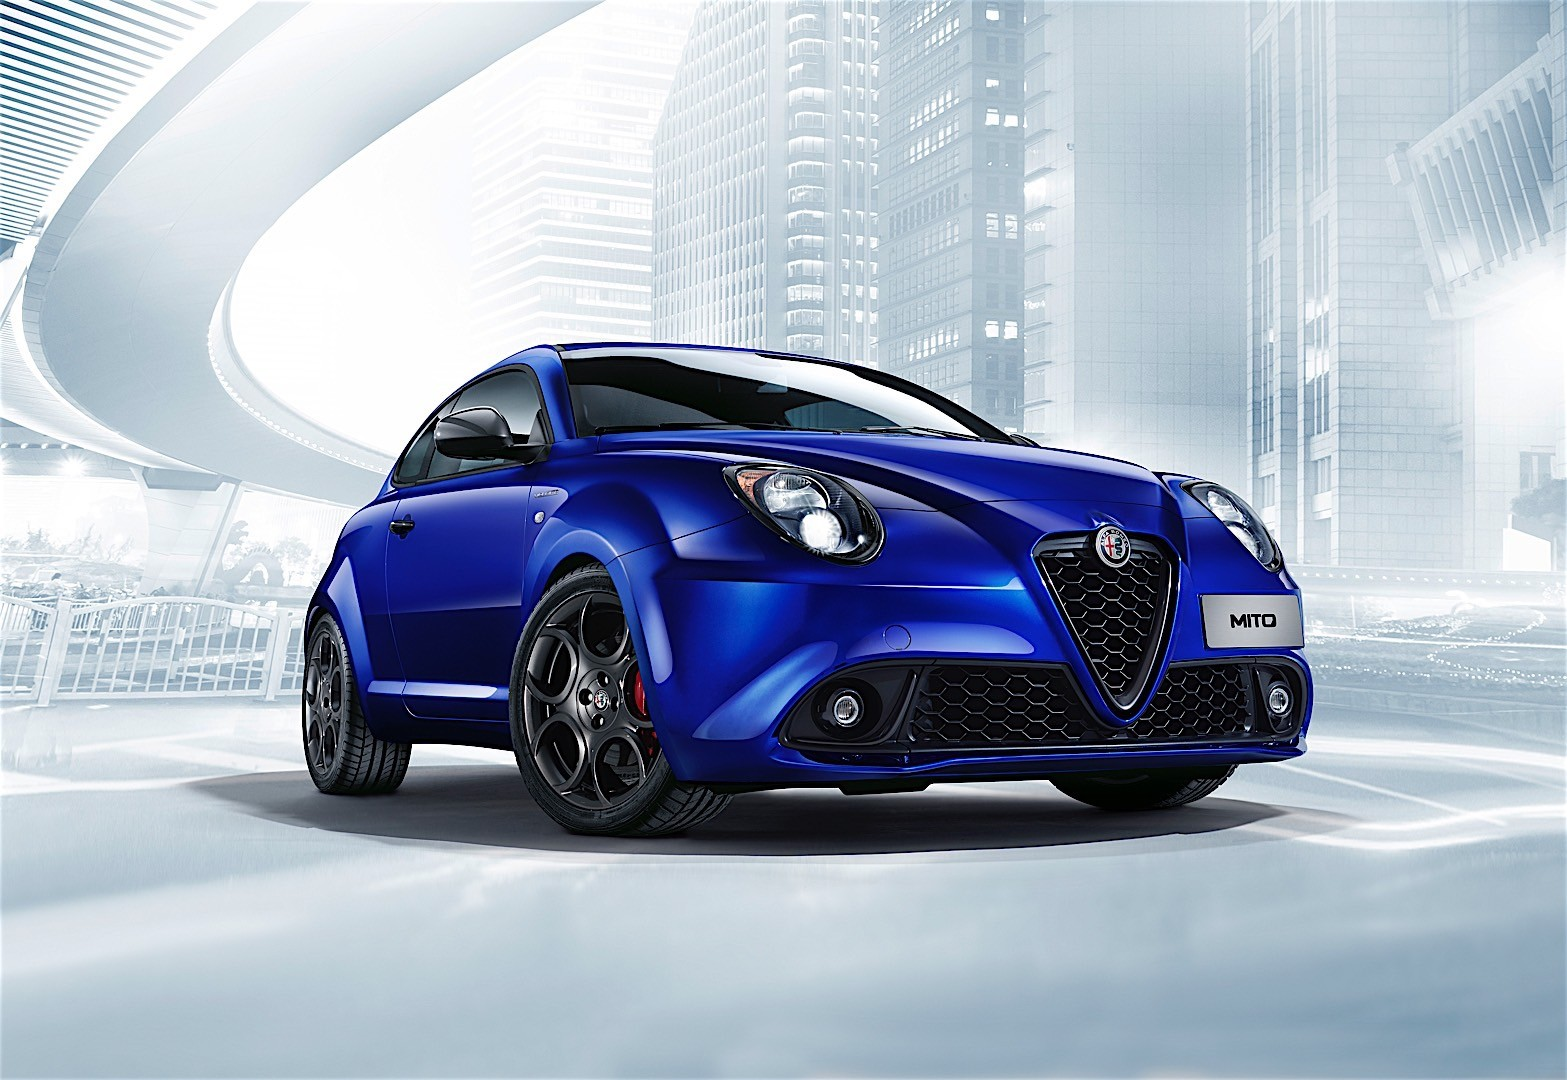 alfa romeo mito veloce specs 2016 2017 2018. Black Bedroom Furniture Sets. Home Design Ideas